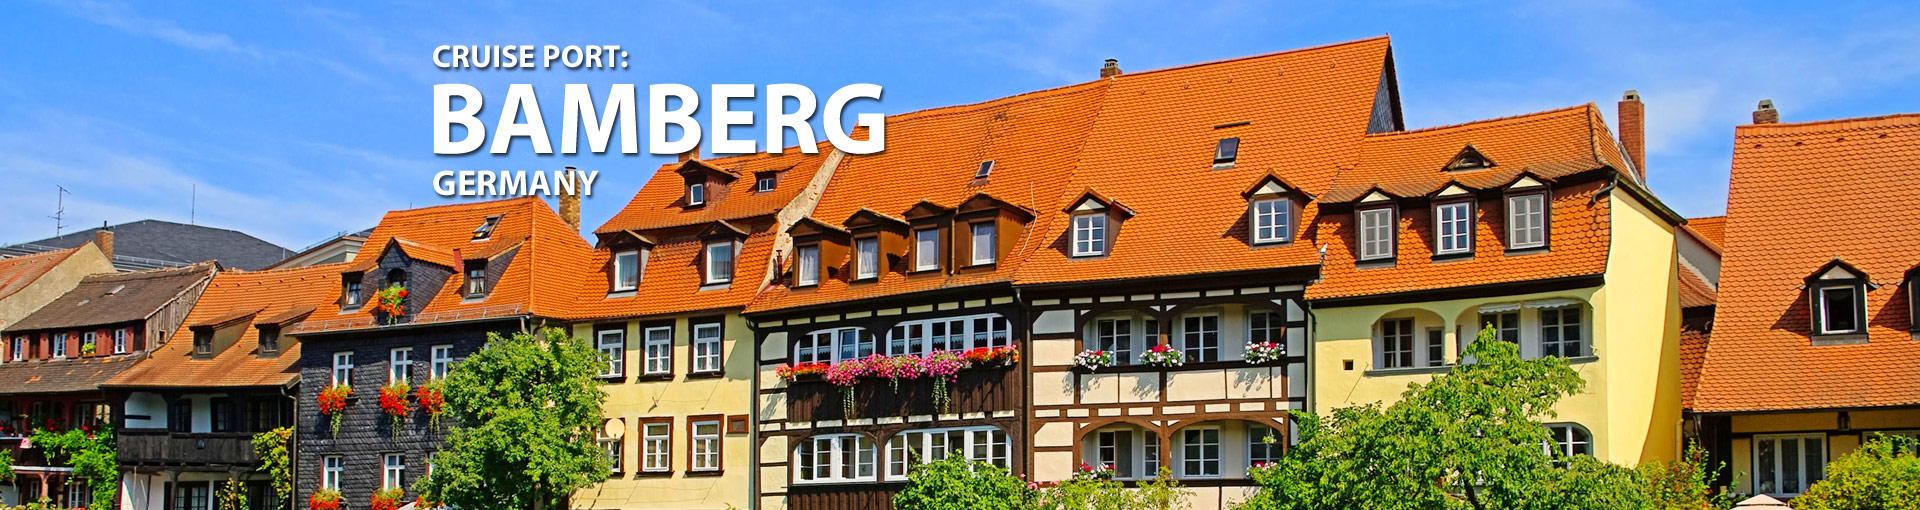 Cruises from Bamberg, Germany